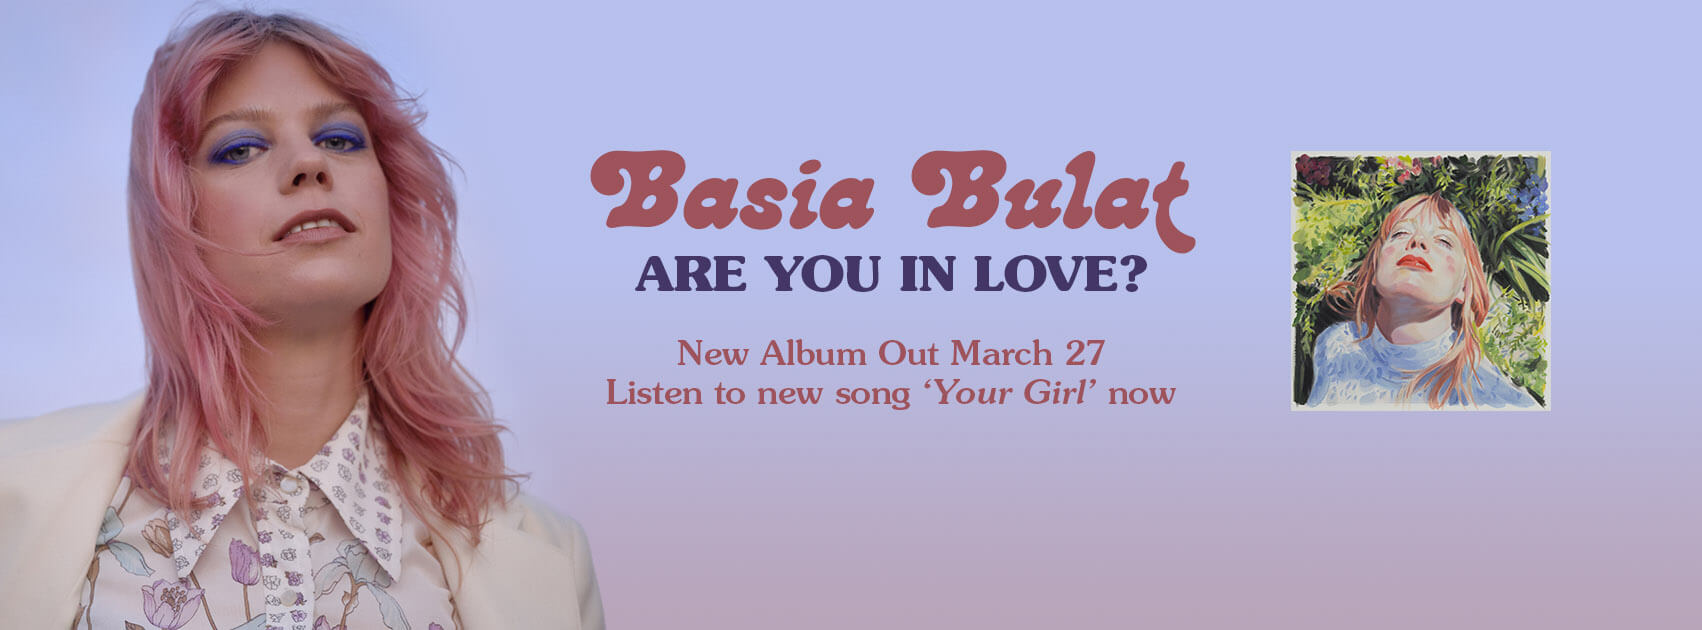 Basia Bulat Are You in Love vinyl order shop secret city records